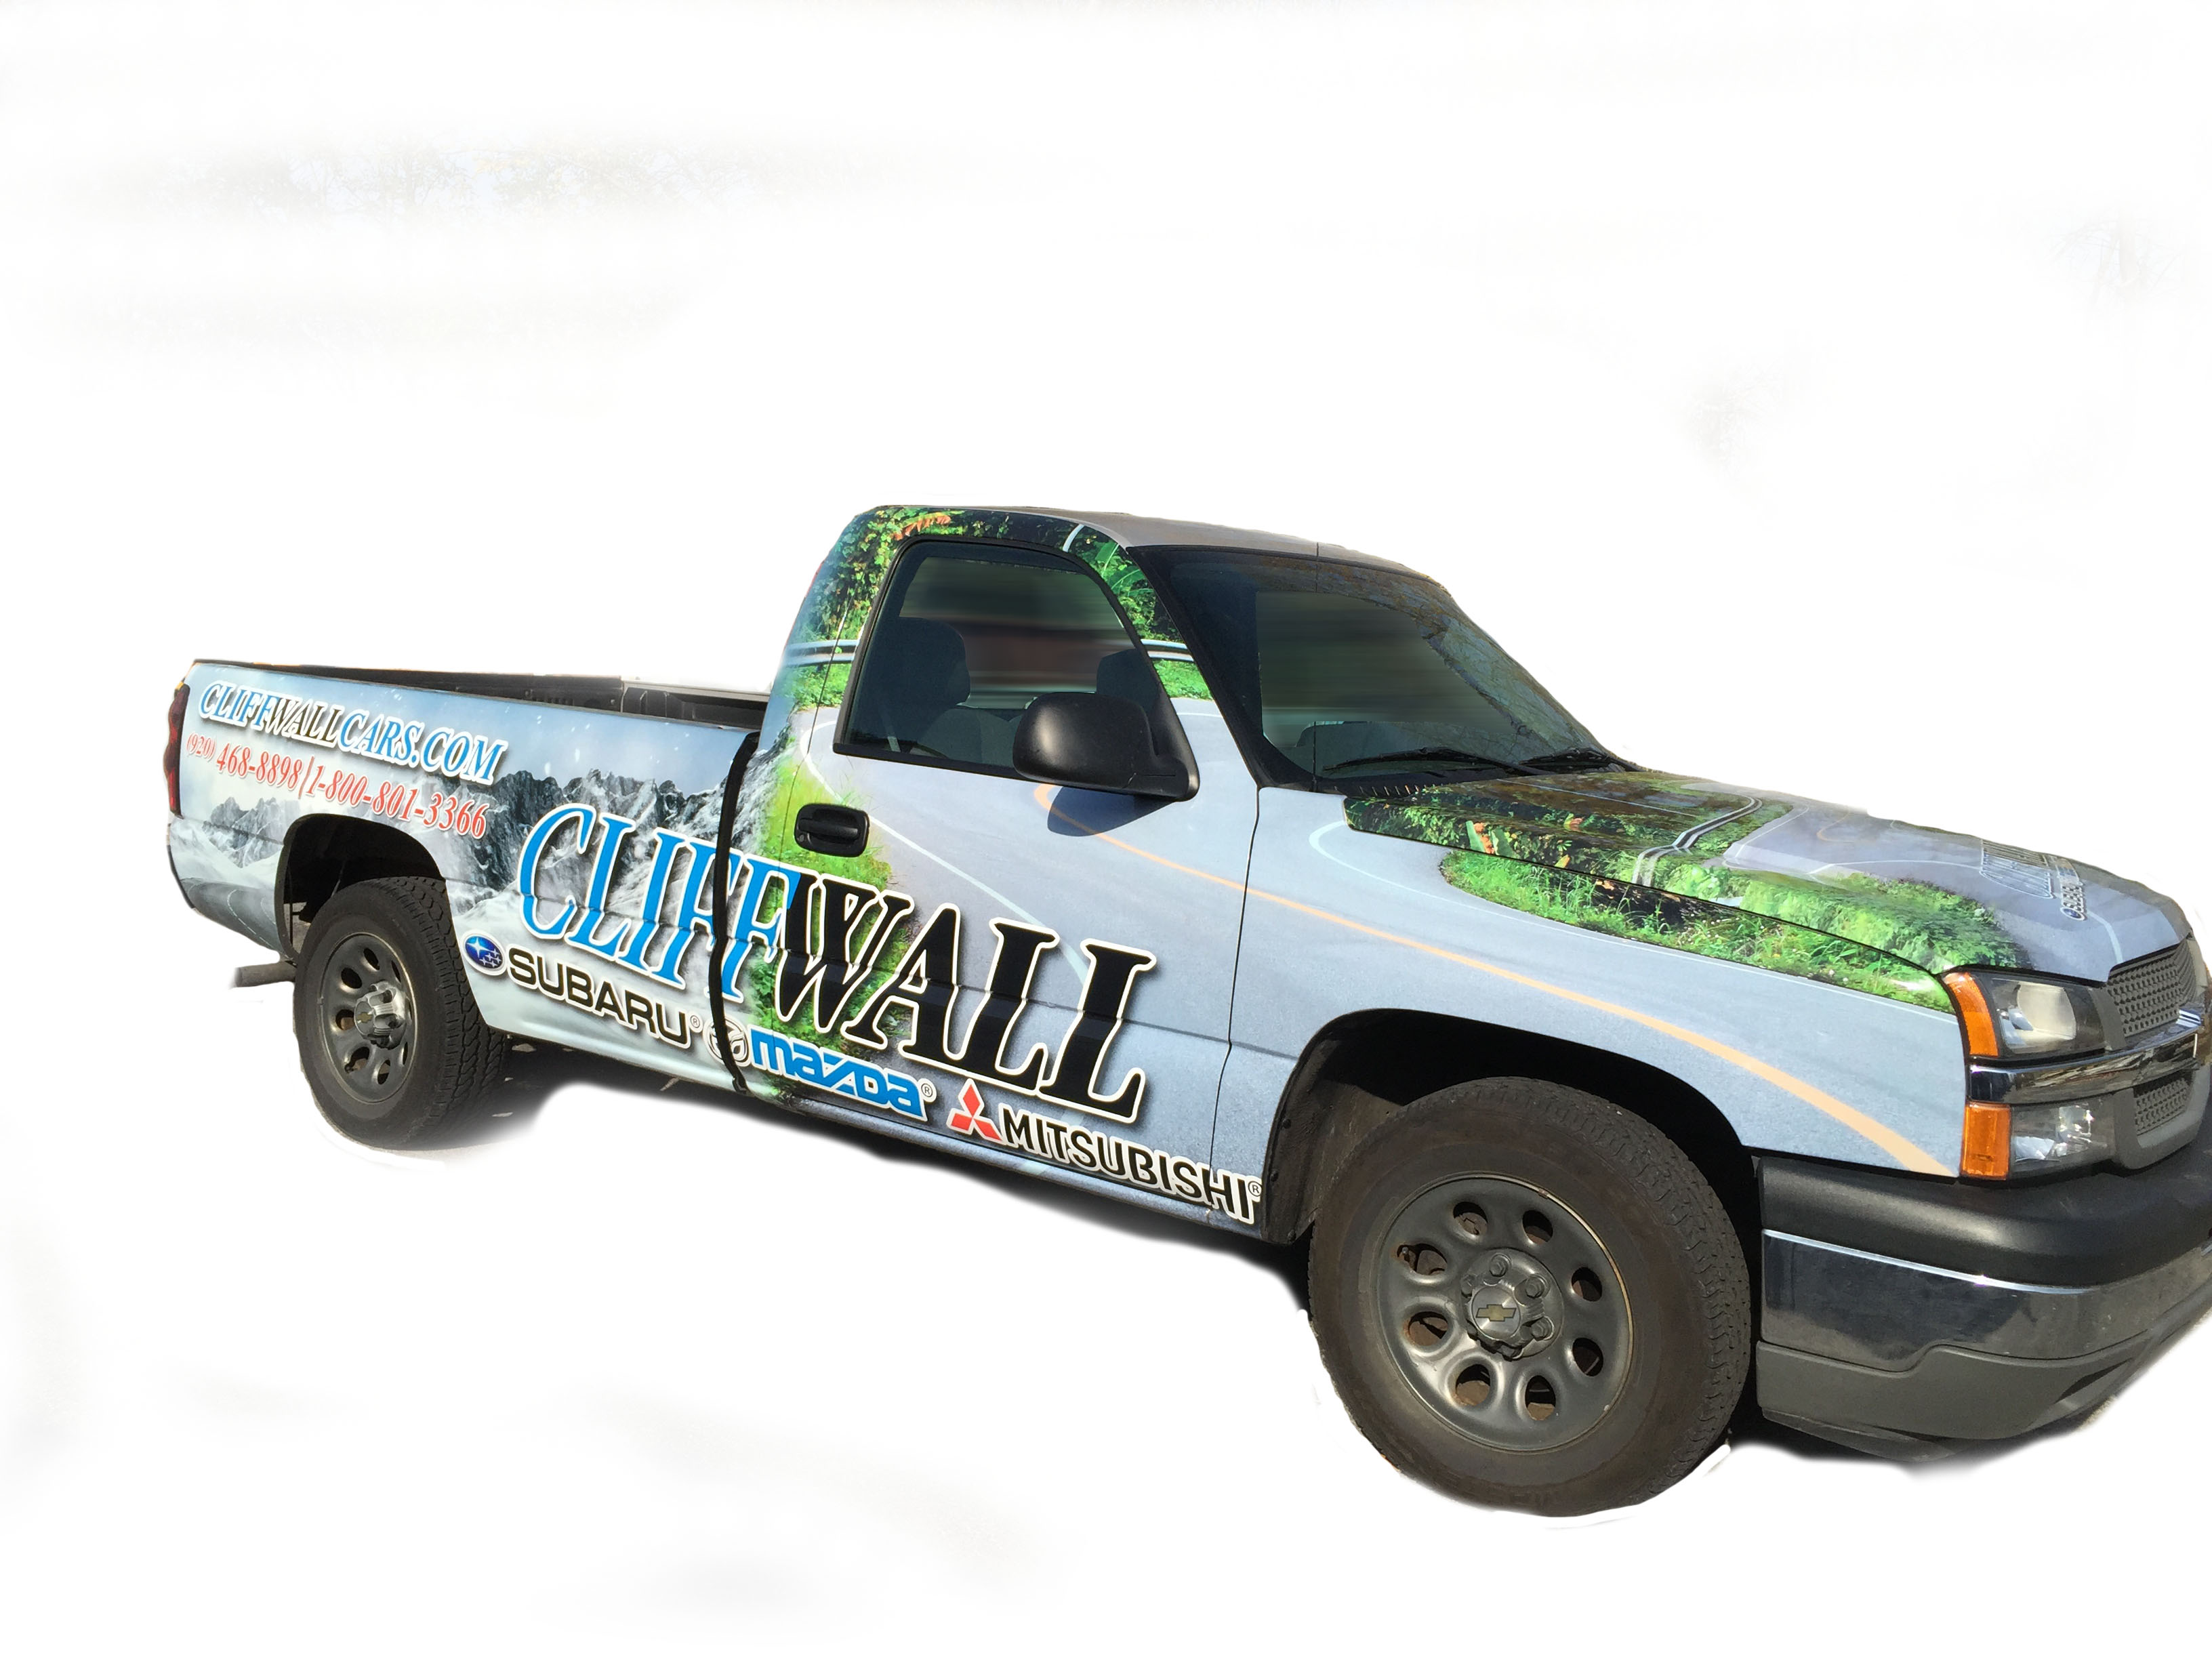 CliffWall Vehicle Wrap